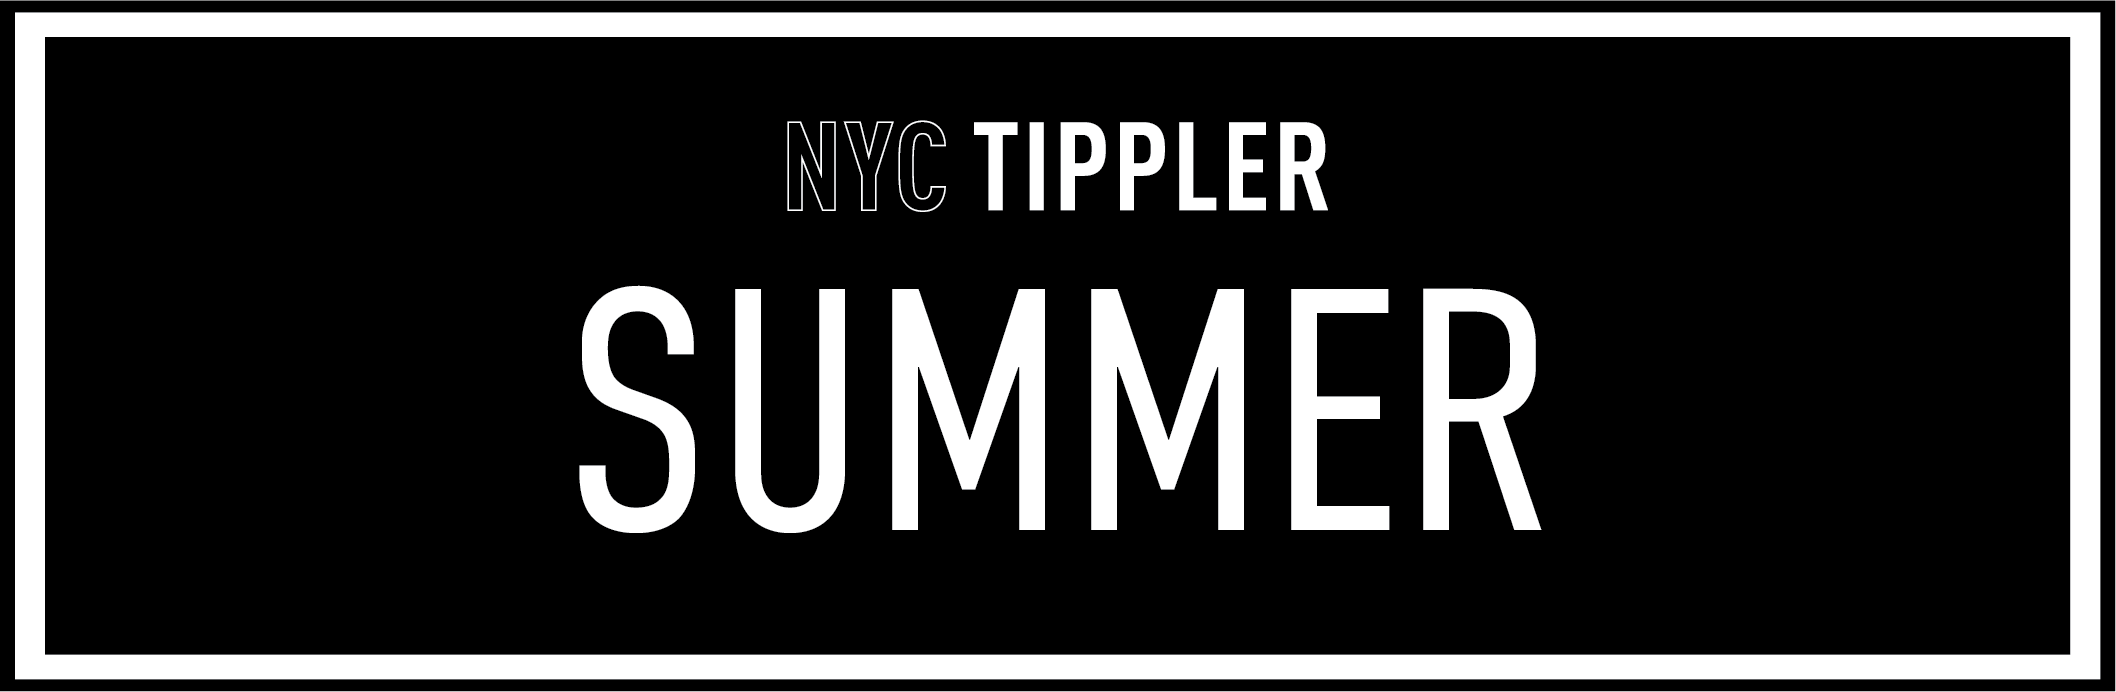 nyc-tippler-logo-seasons-03.png